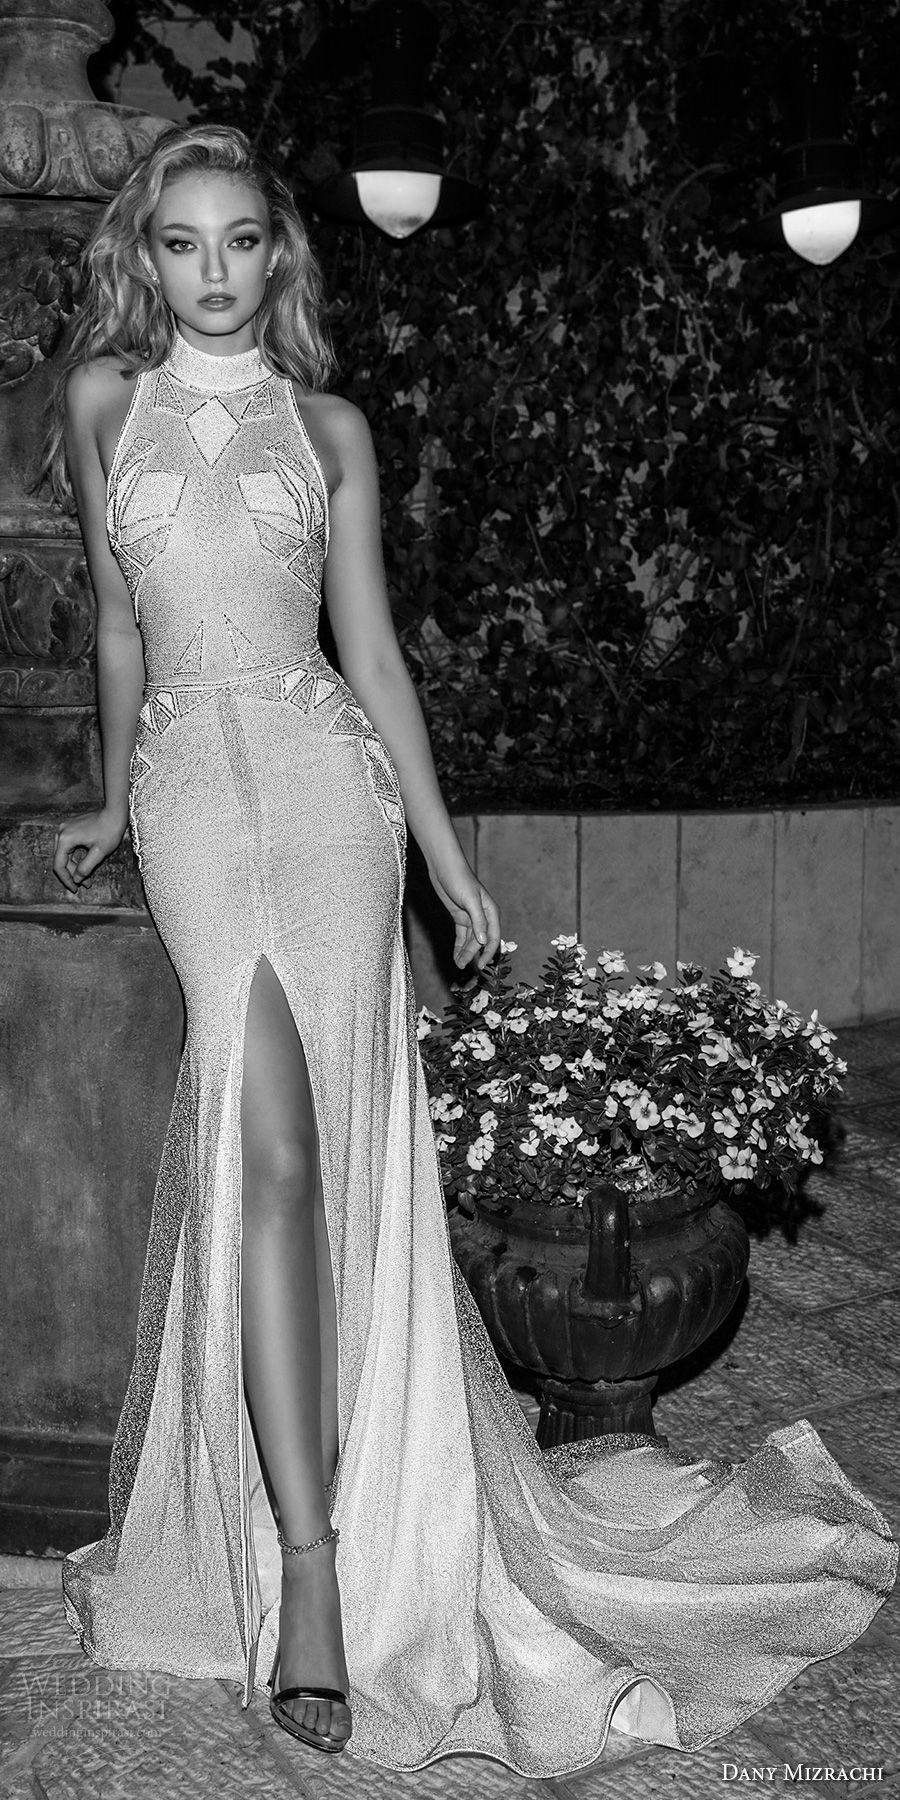 dany mizrachi spring 2018 bridal sleeveless halter neck full embellishment high slit art decor vintage elegant sheath wedding dress rasor back chapel train (26) mv